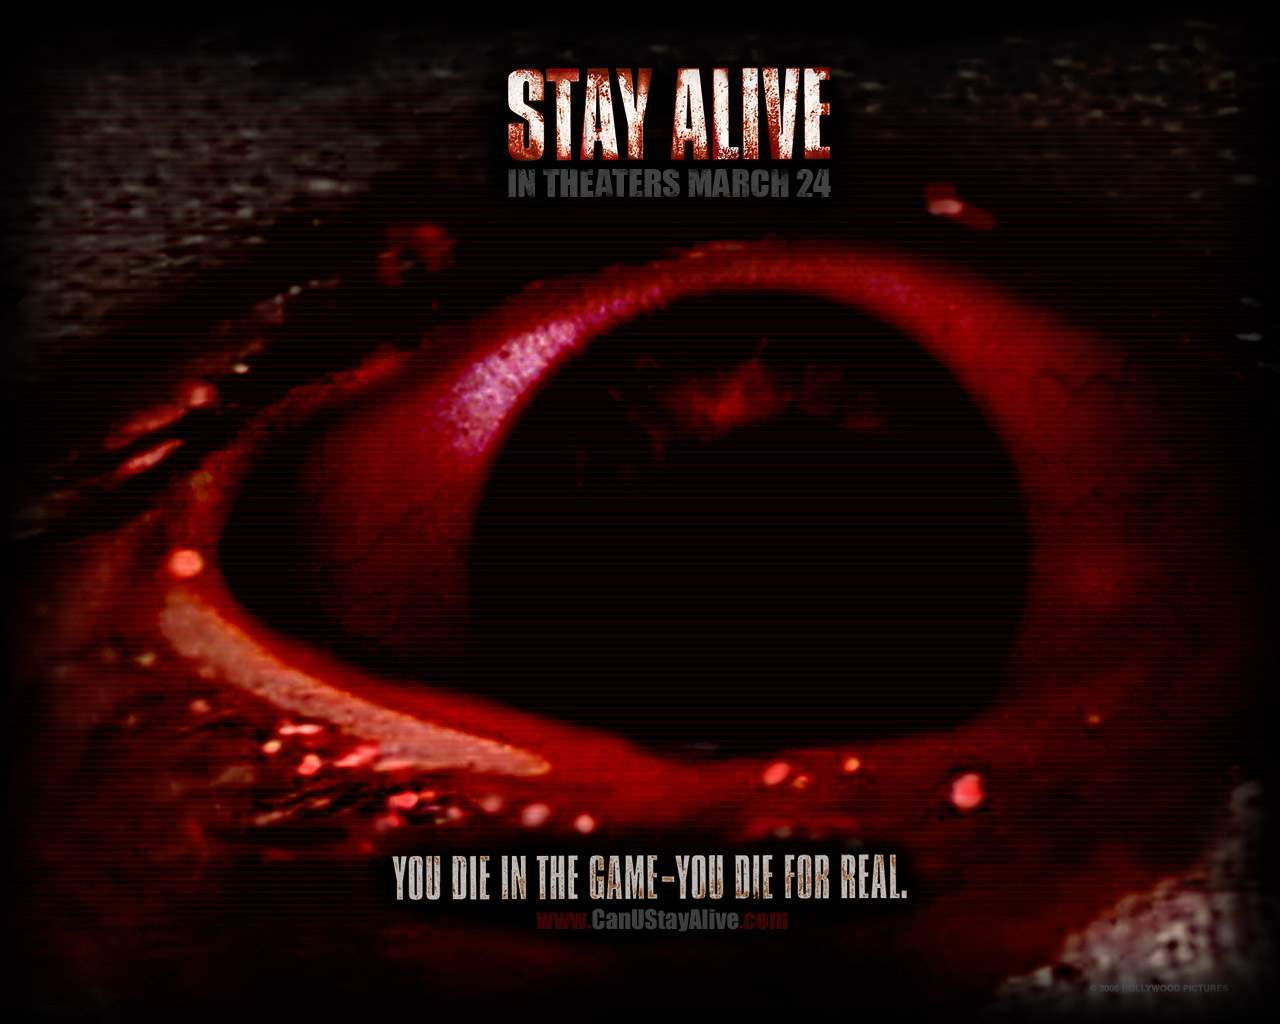 stay alive wallpaper 10007836 size 1280x1024 more stay alive wallpaper 1280x1024